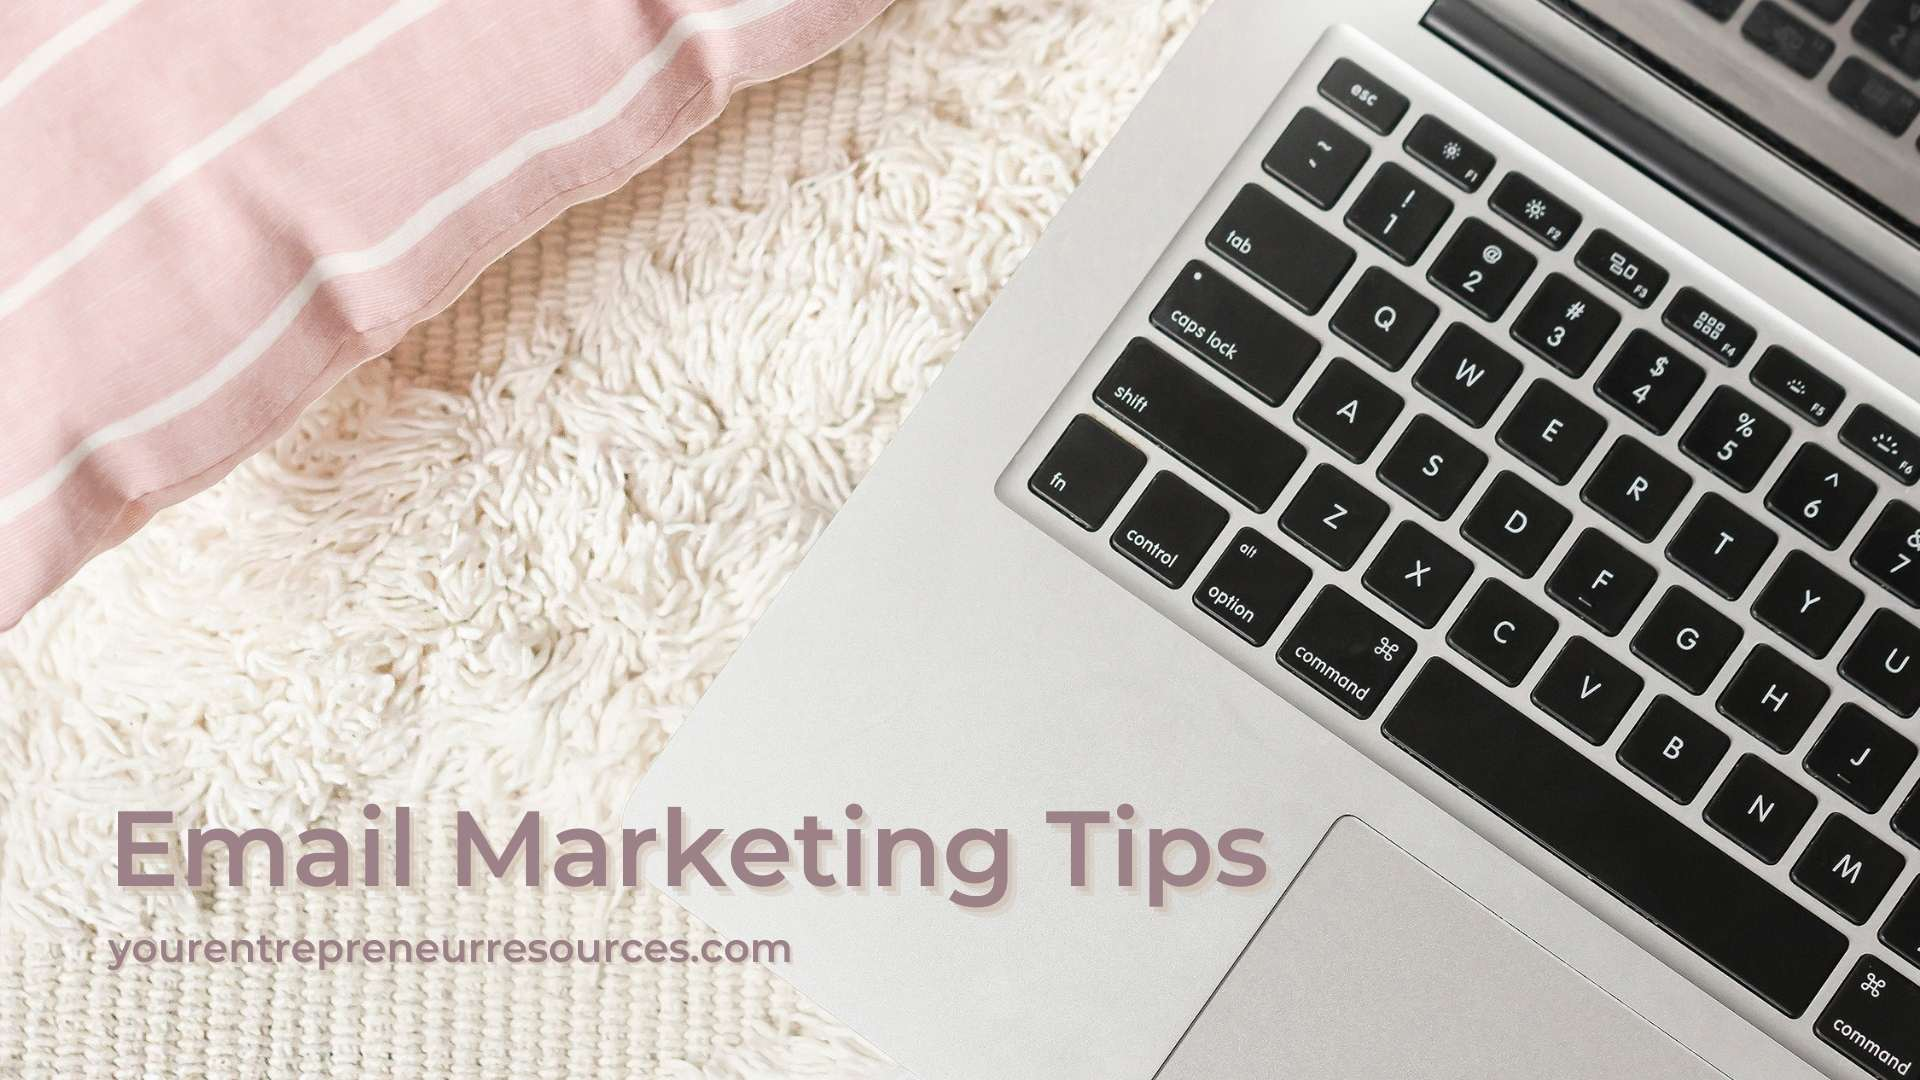 Email Marketing Tips How to use Email marketing for your business